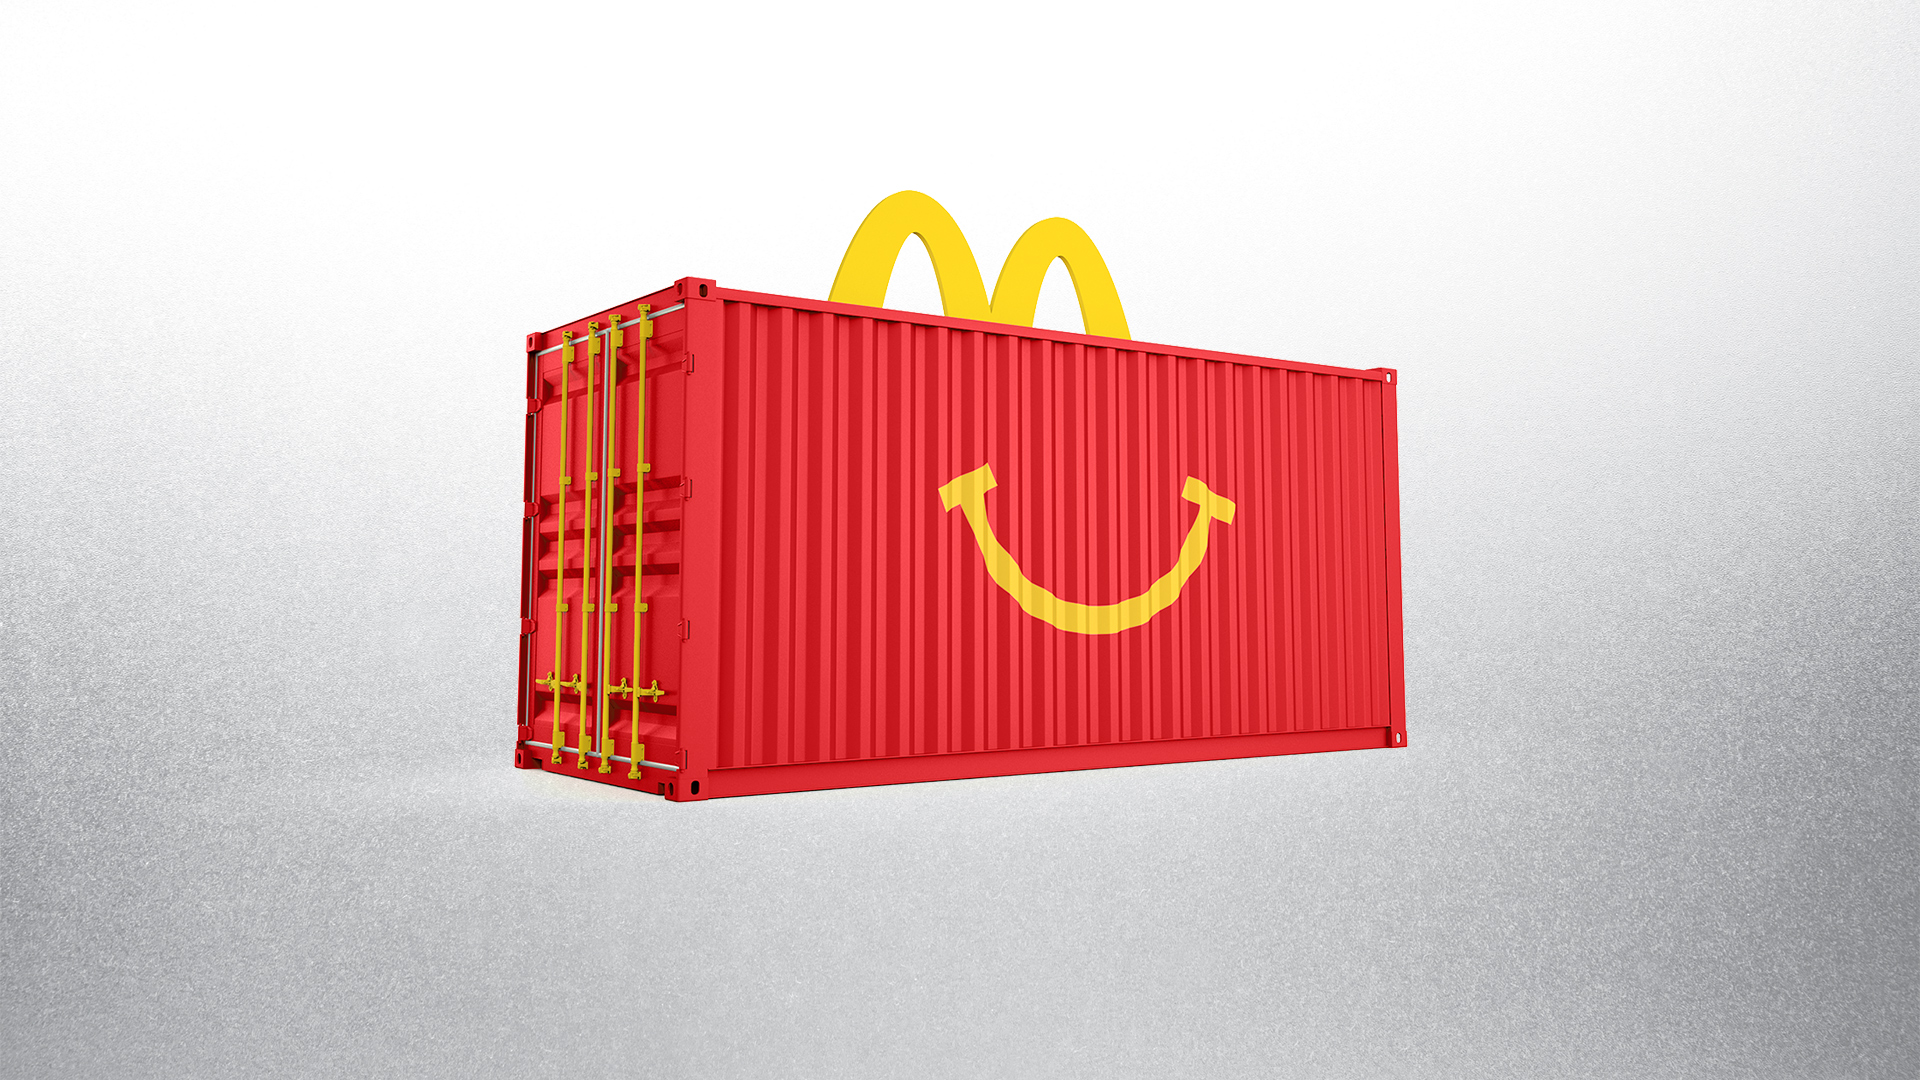 McDonald's Happy Meal Red 20' Shipping Container Experiential